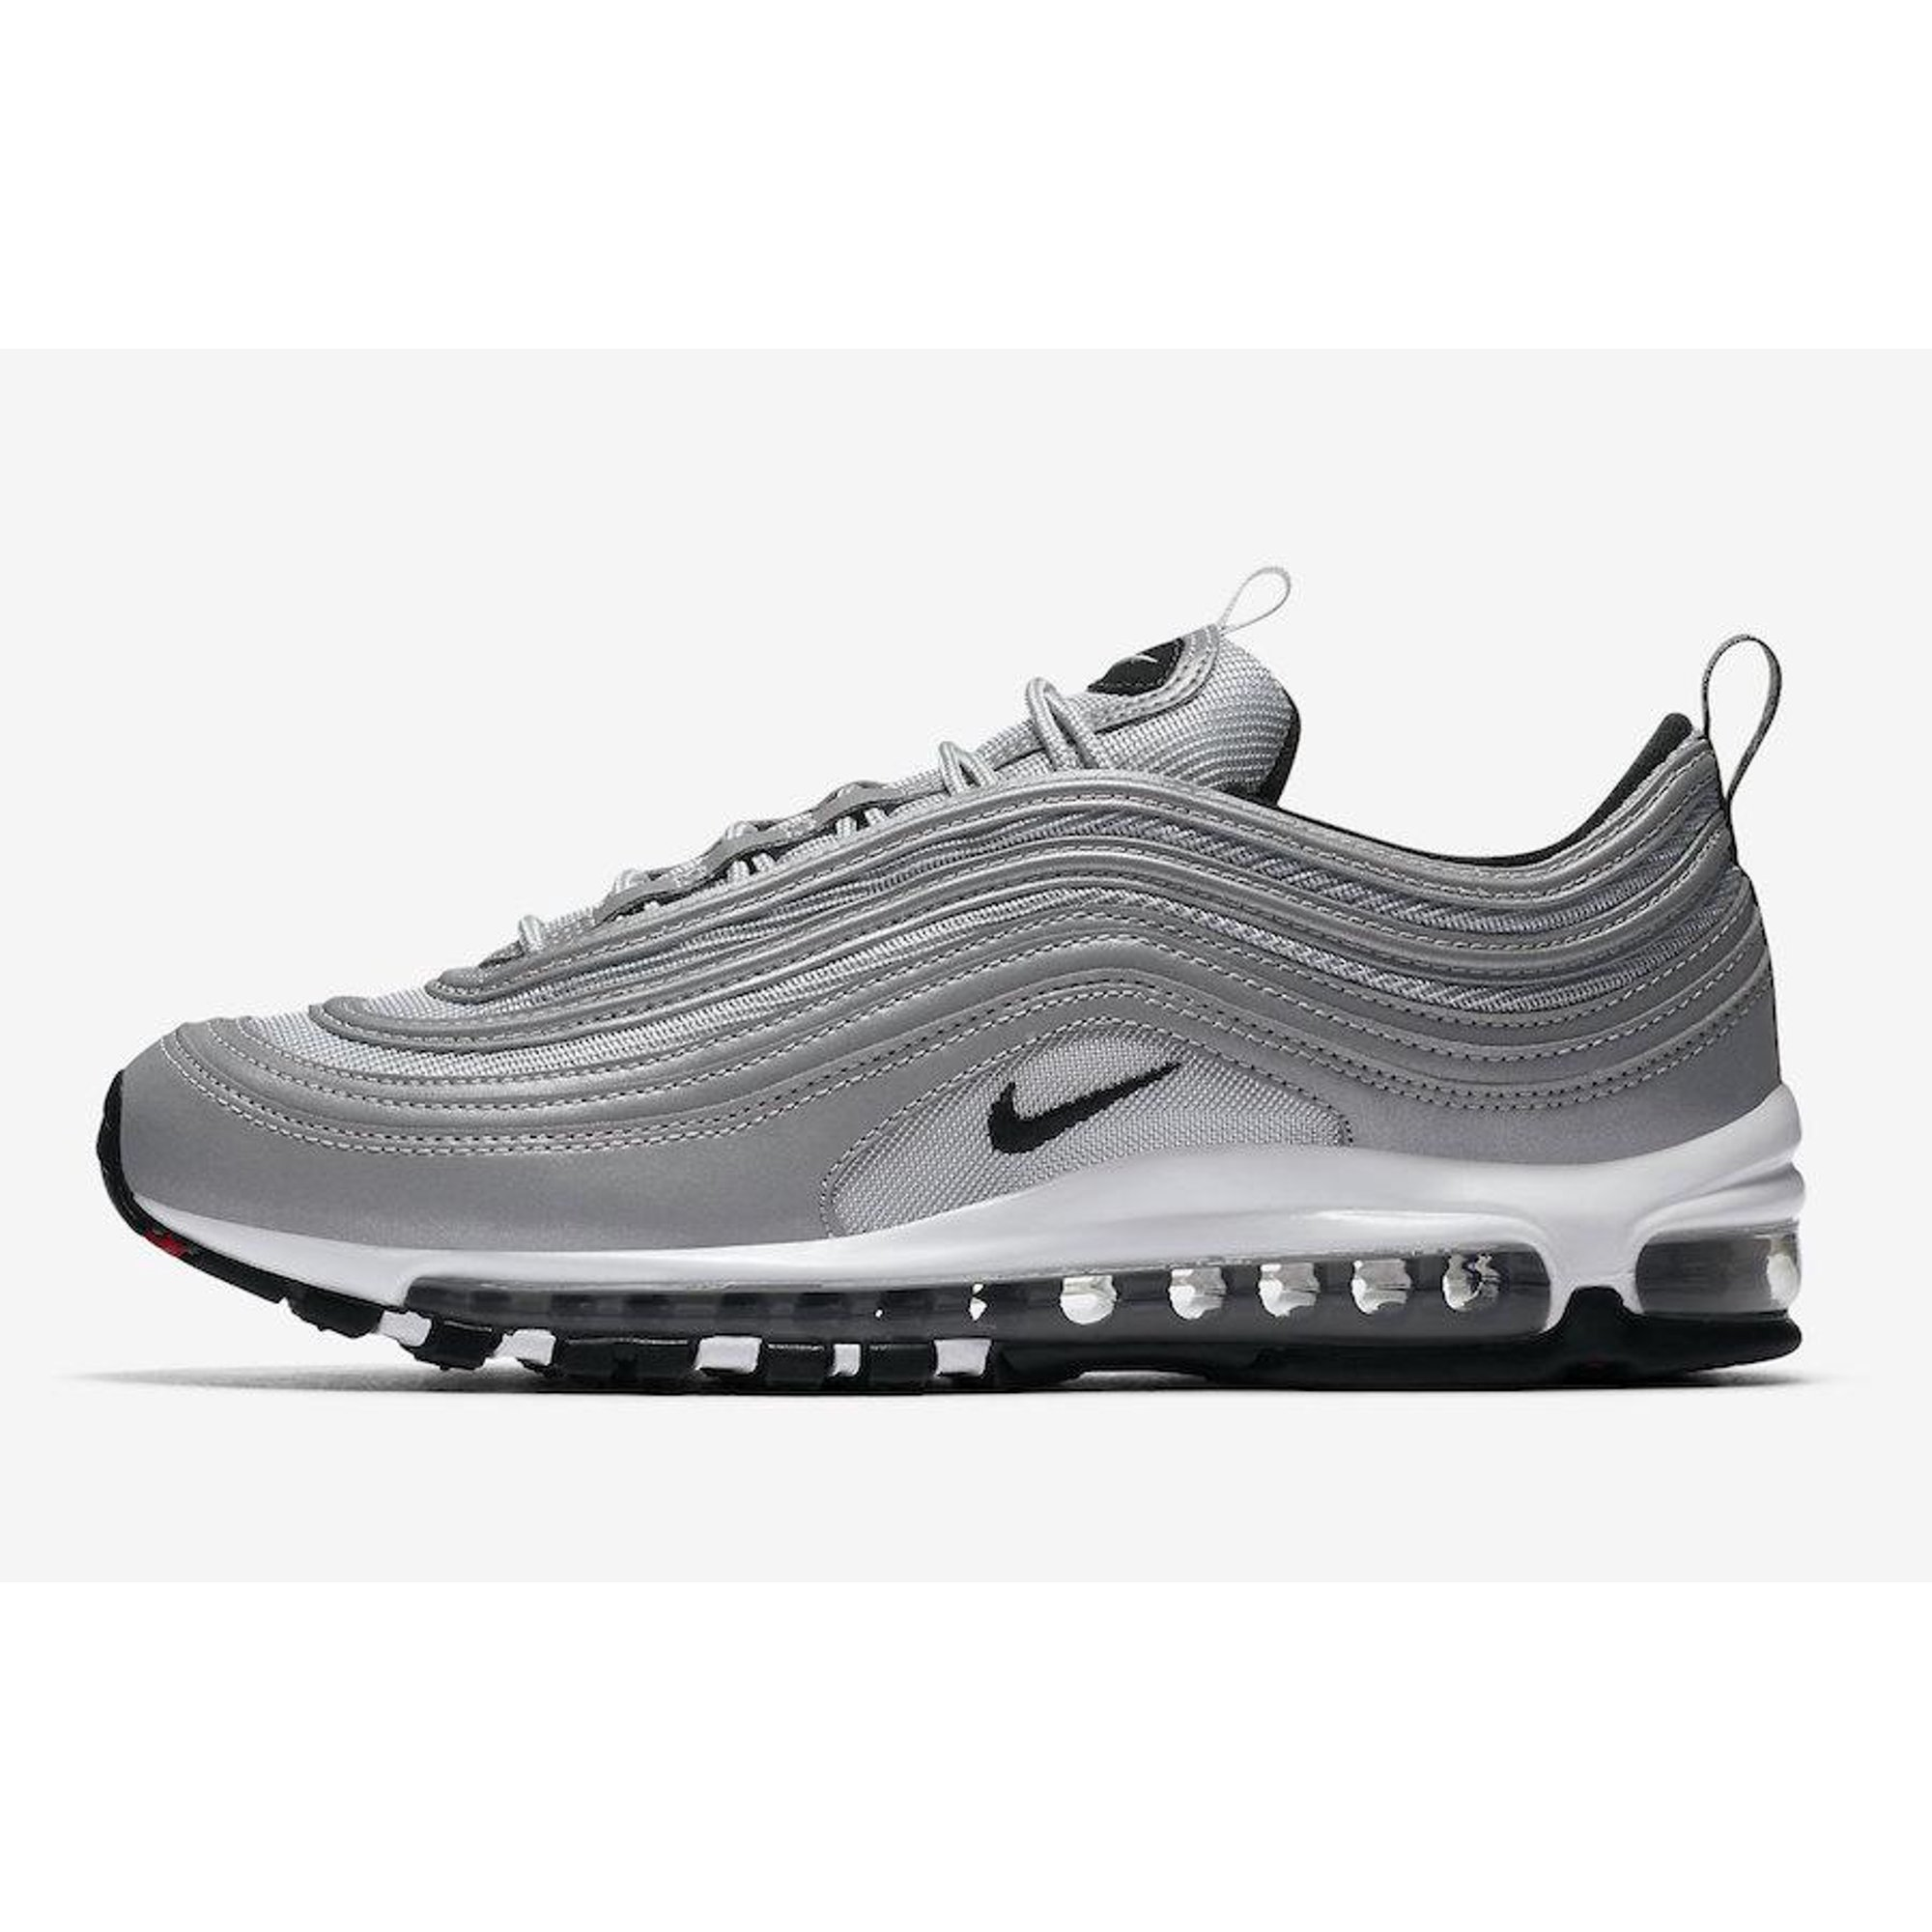 651d0ddfdf Mens Nike Air Max 97 Premium Reflect Silver Pure Platinum Wolf Grey Bl